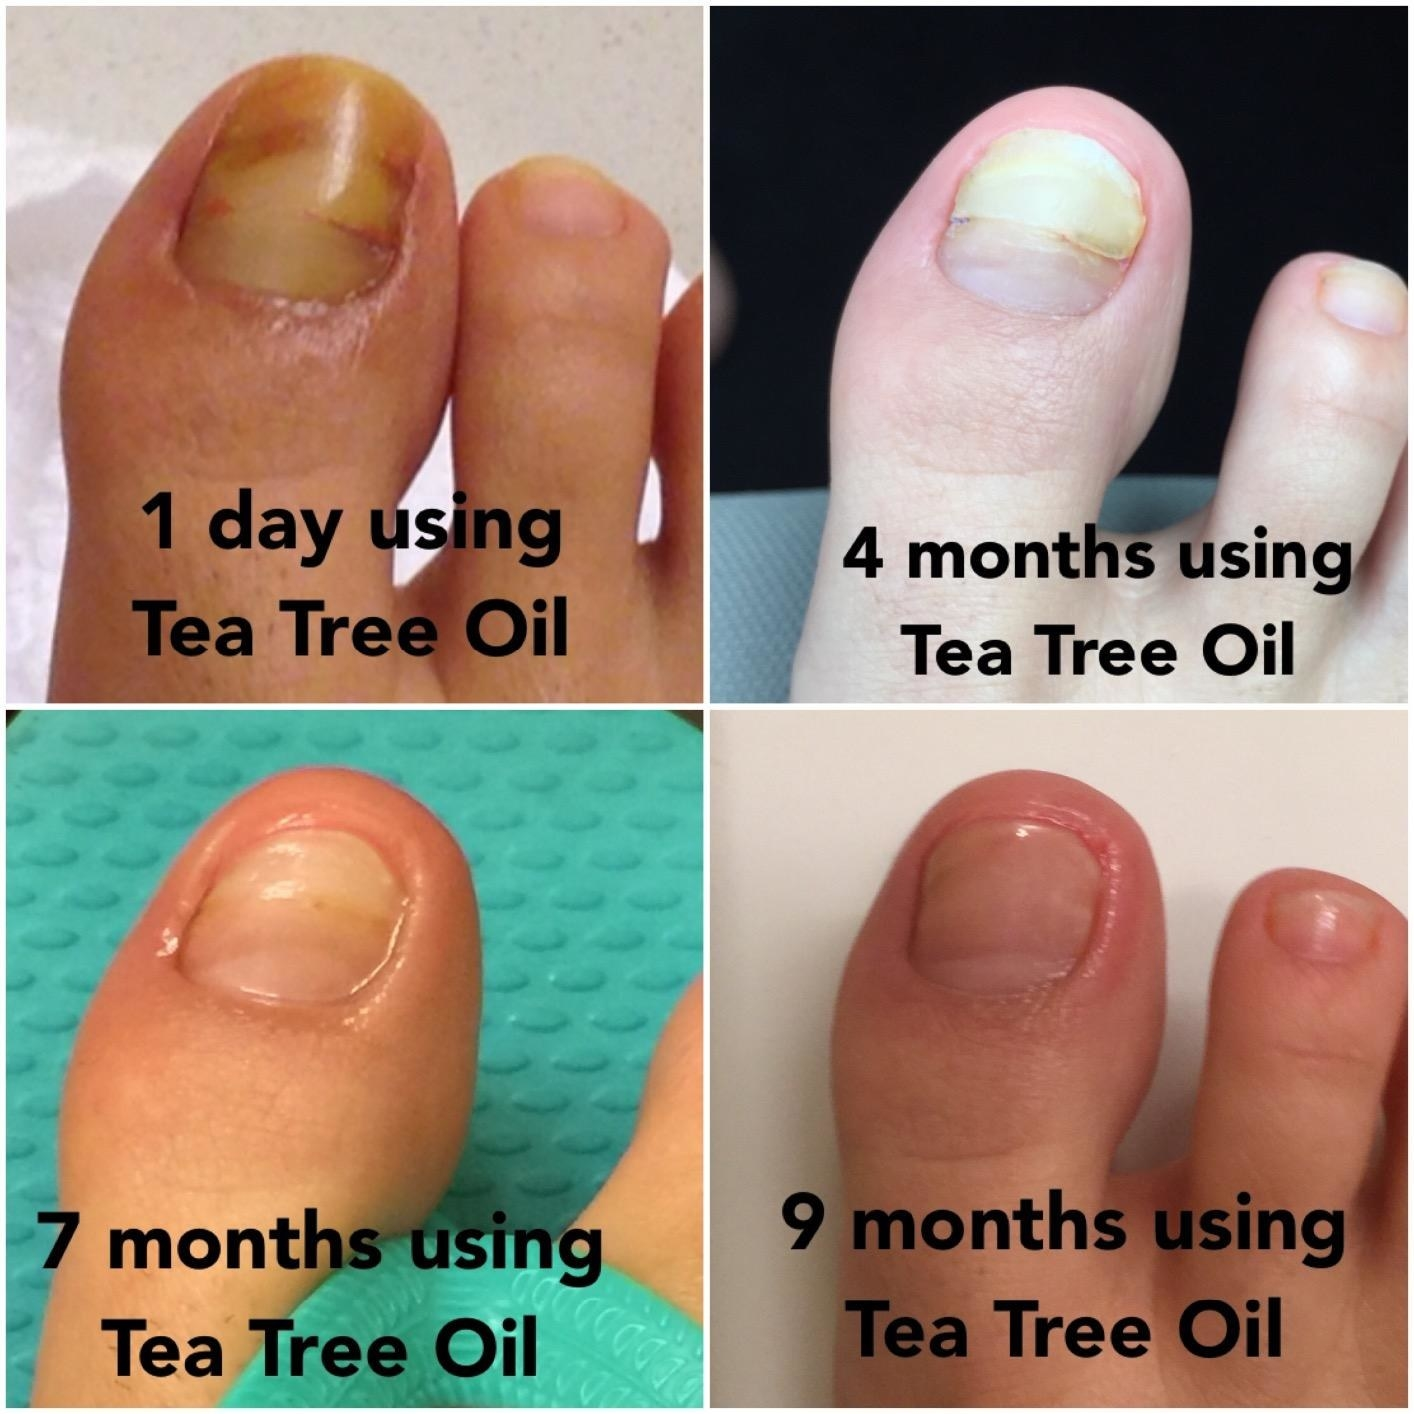 four images of a reviewer toe over 9 months showing nails going from yellow to normal nail color